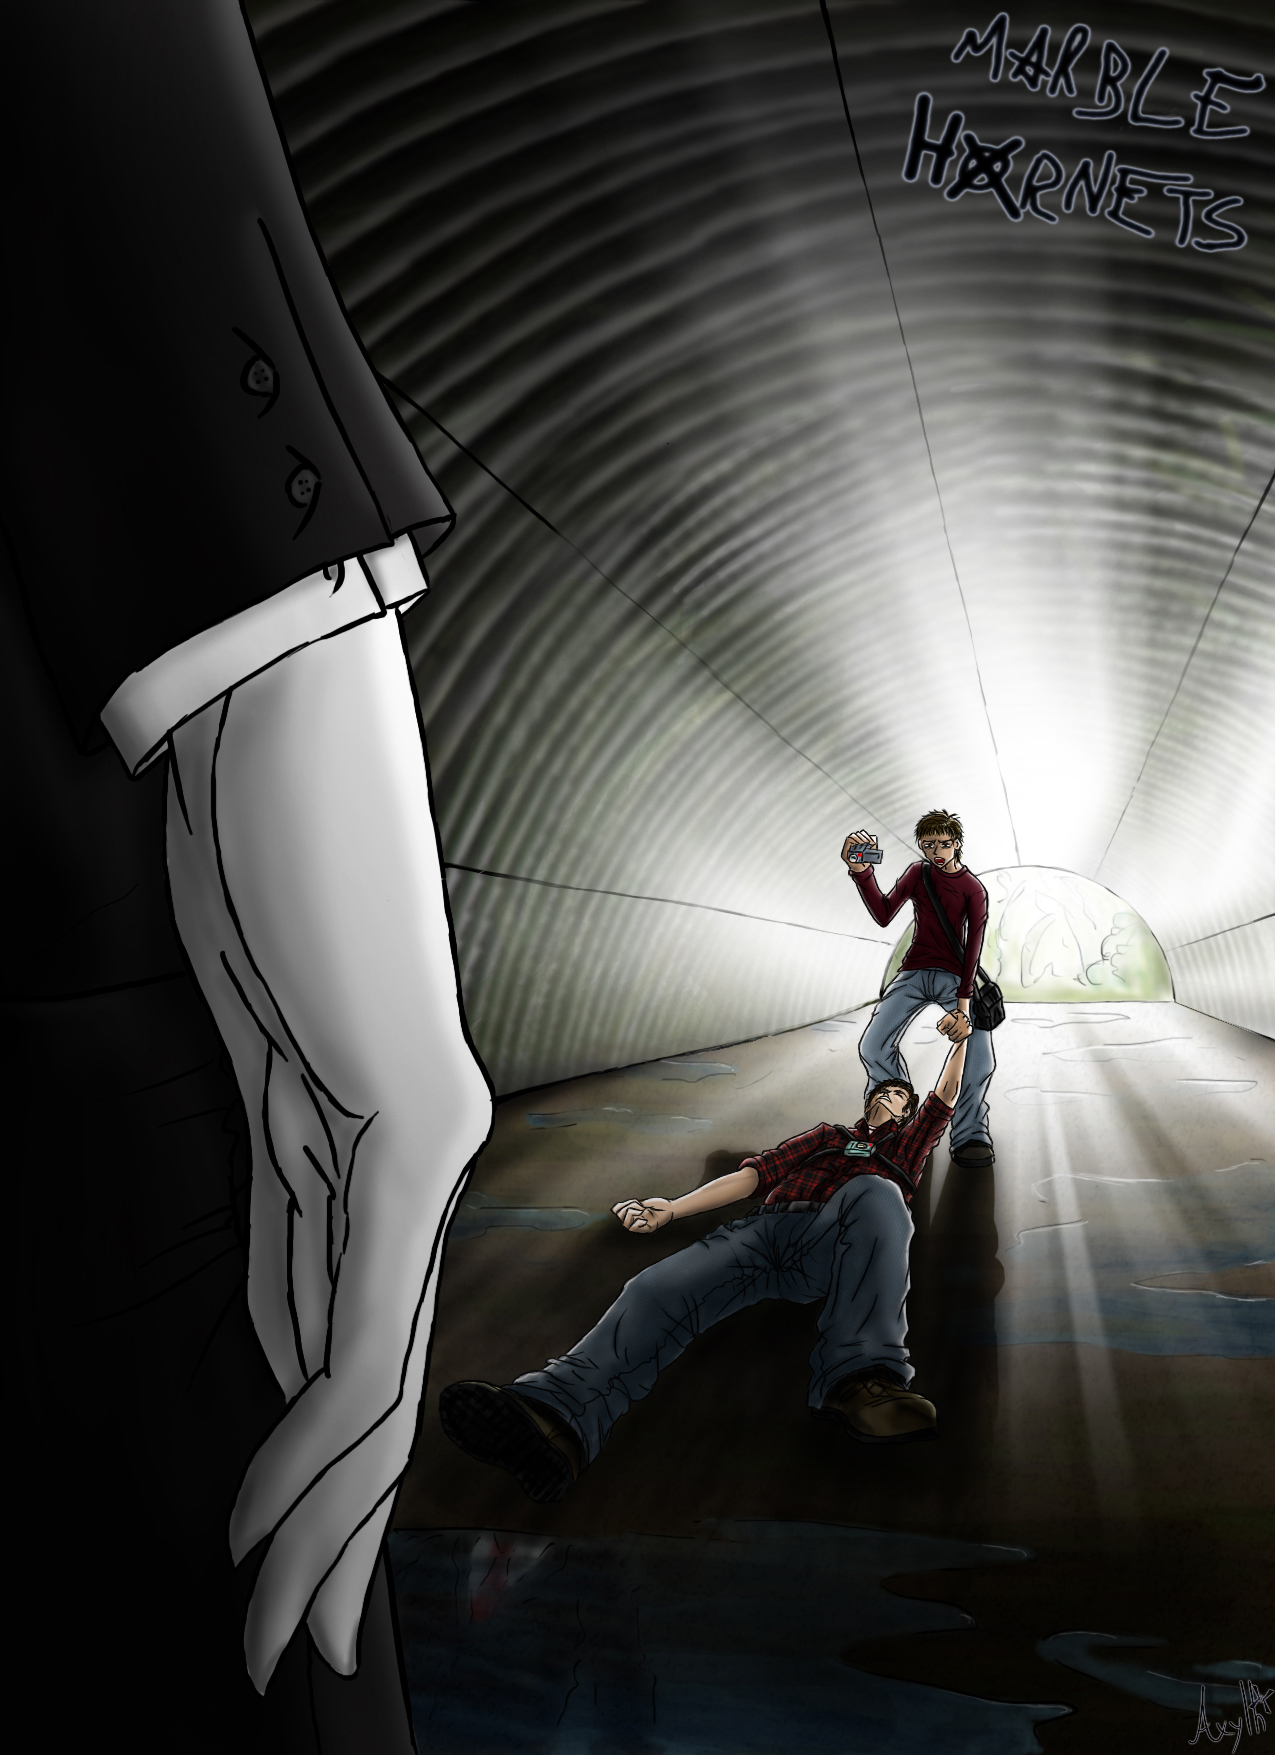 marble hornets 64 get up tim by axylh on deviantart